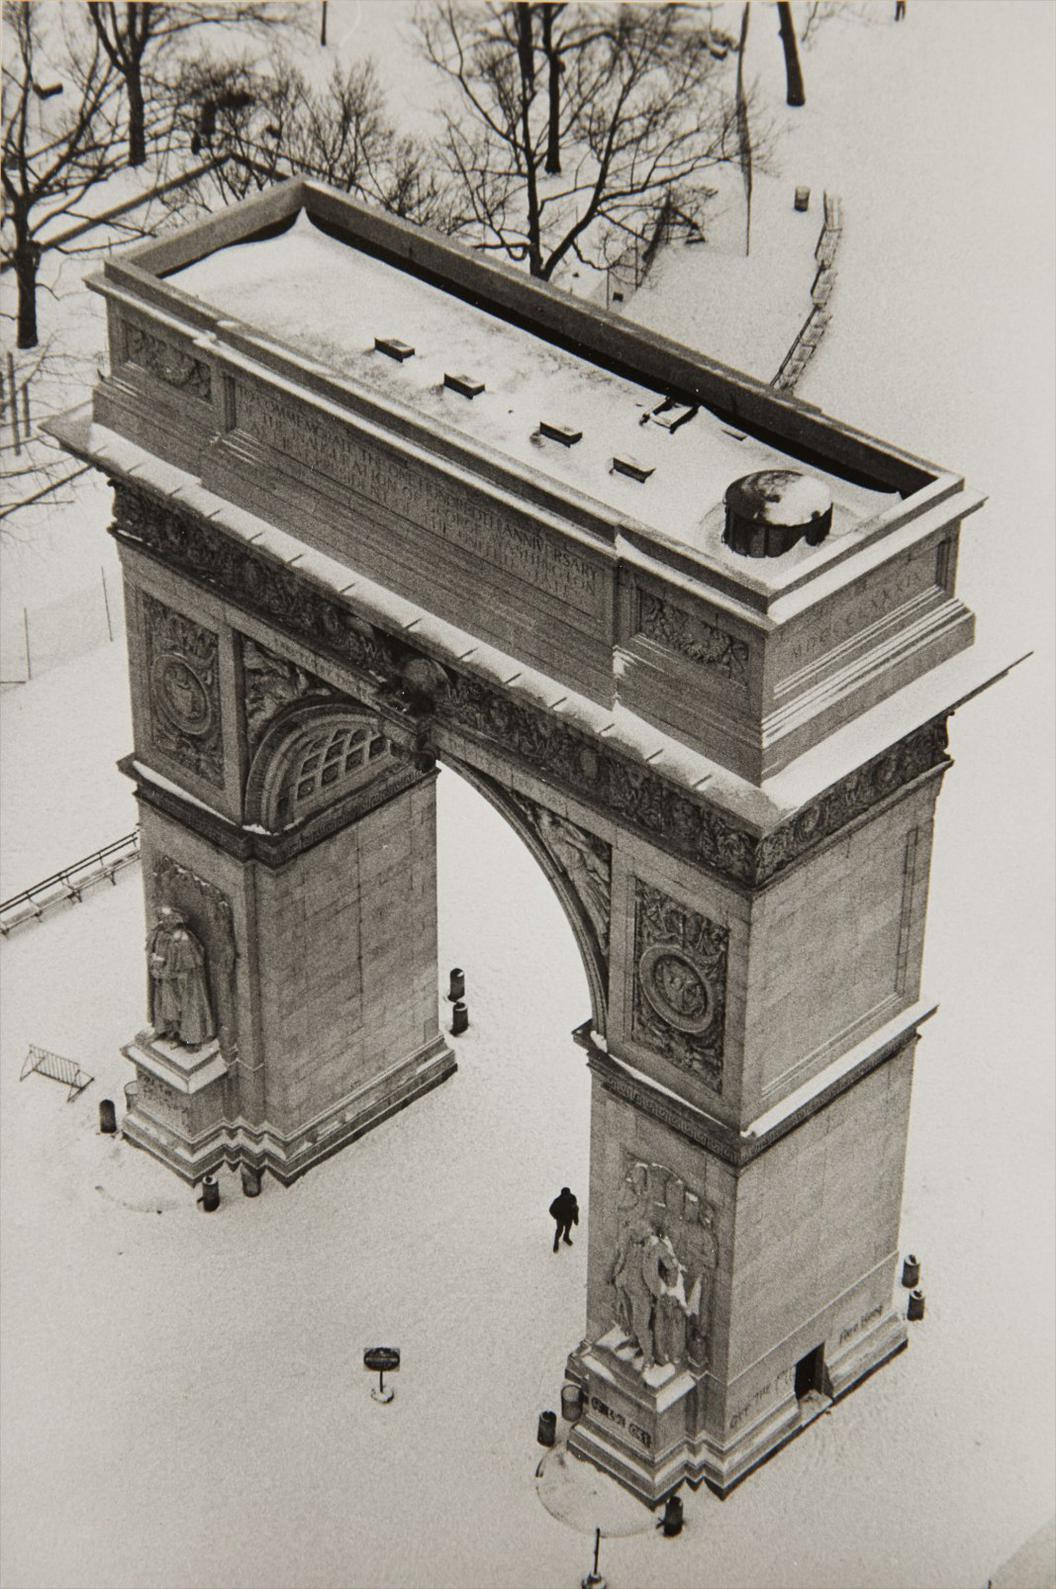 Andre Kertesz-Arch And Snow, Washington Square Park, February 15-1970